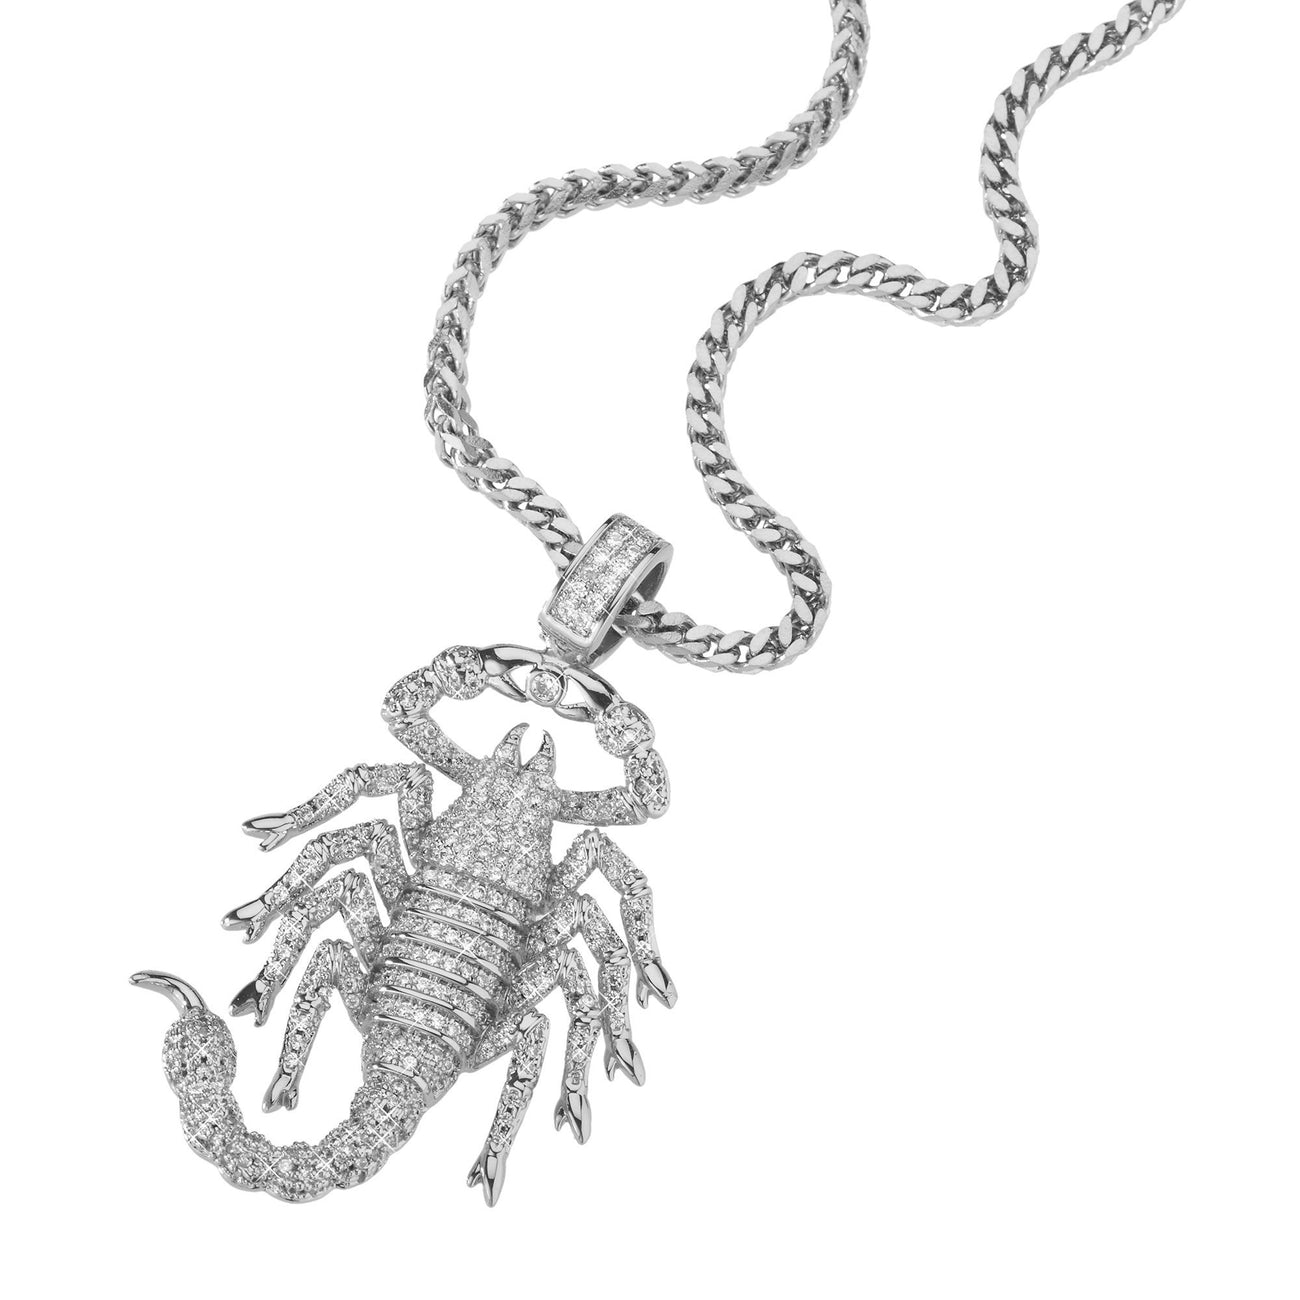 Necklace - Rhodium Scorpion King Pendant